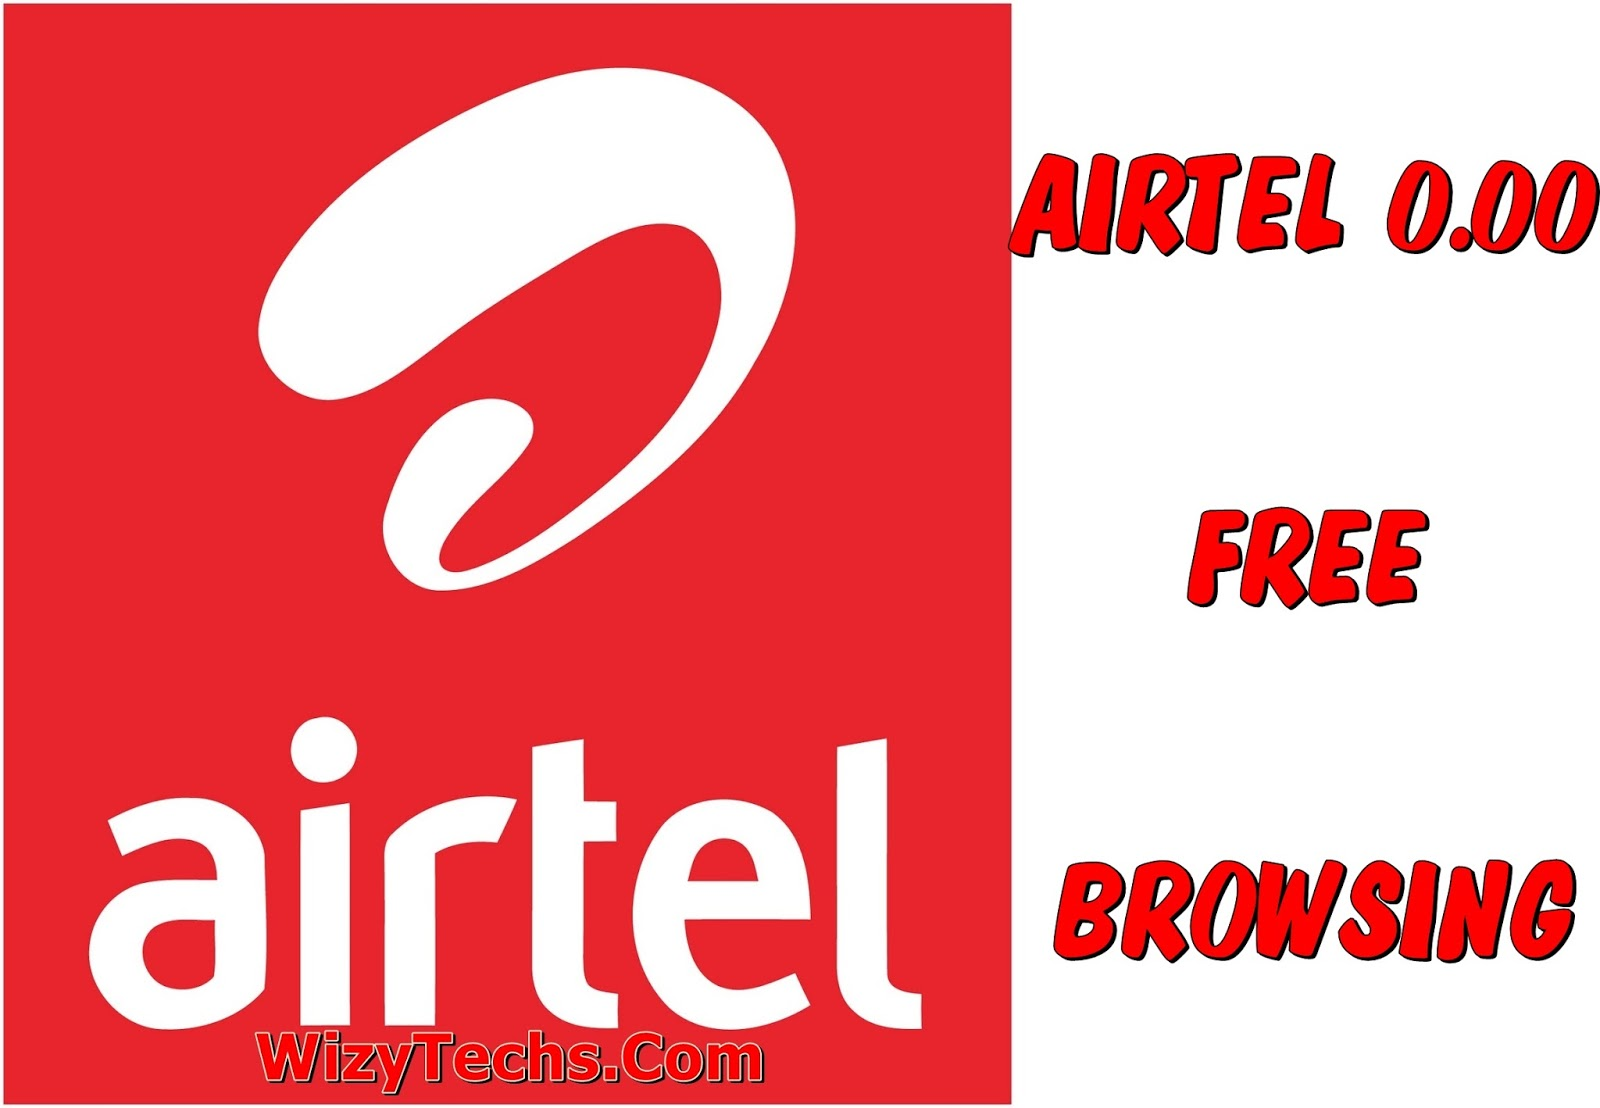 Psiphon Settings For Airtel 0 00 Free Browsing Tweak +